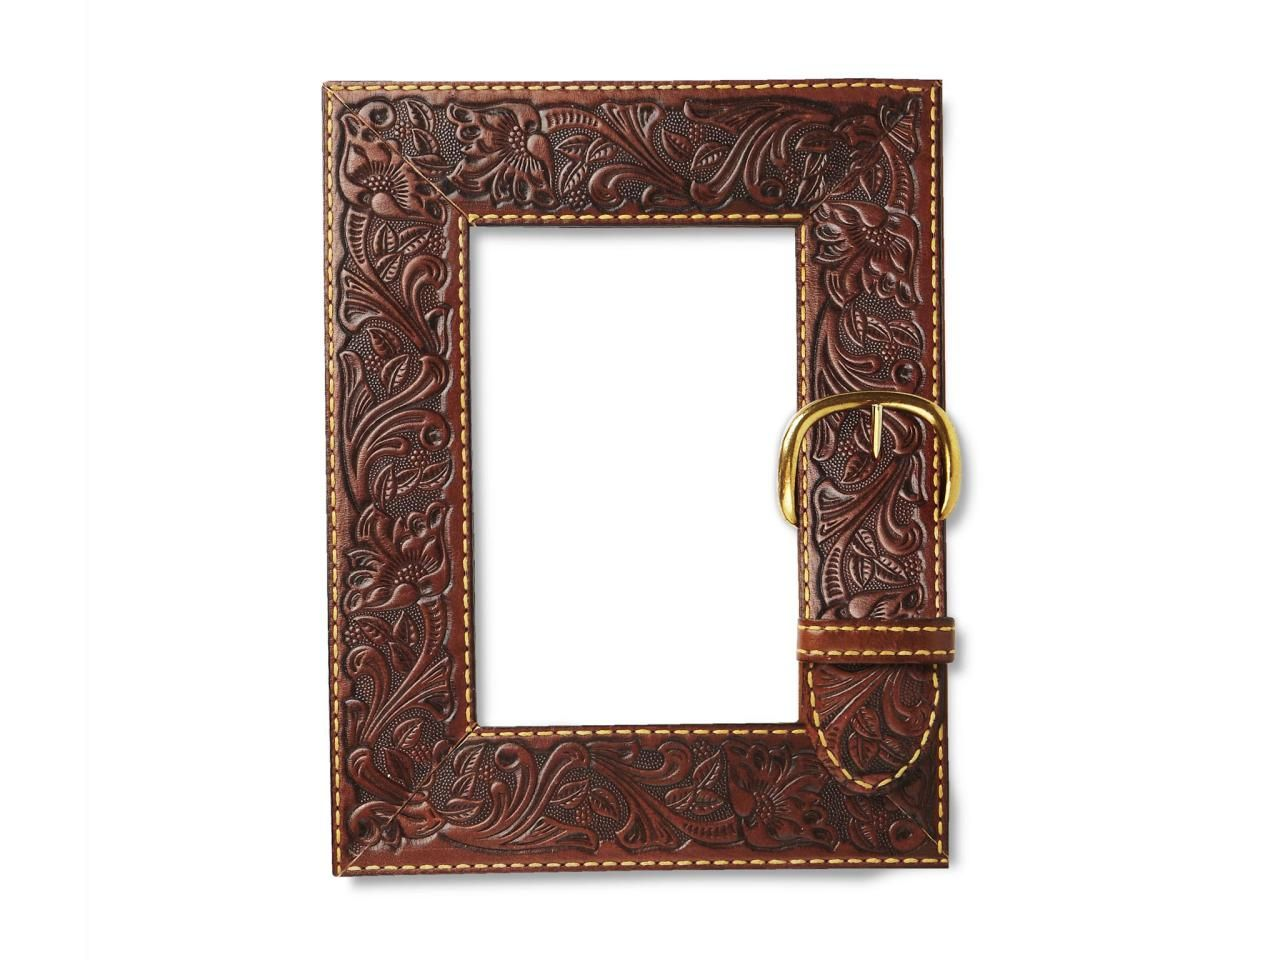 10 Things to Do With a Plain Picture Frame | Hgtv, Homemade and ...